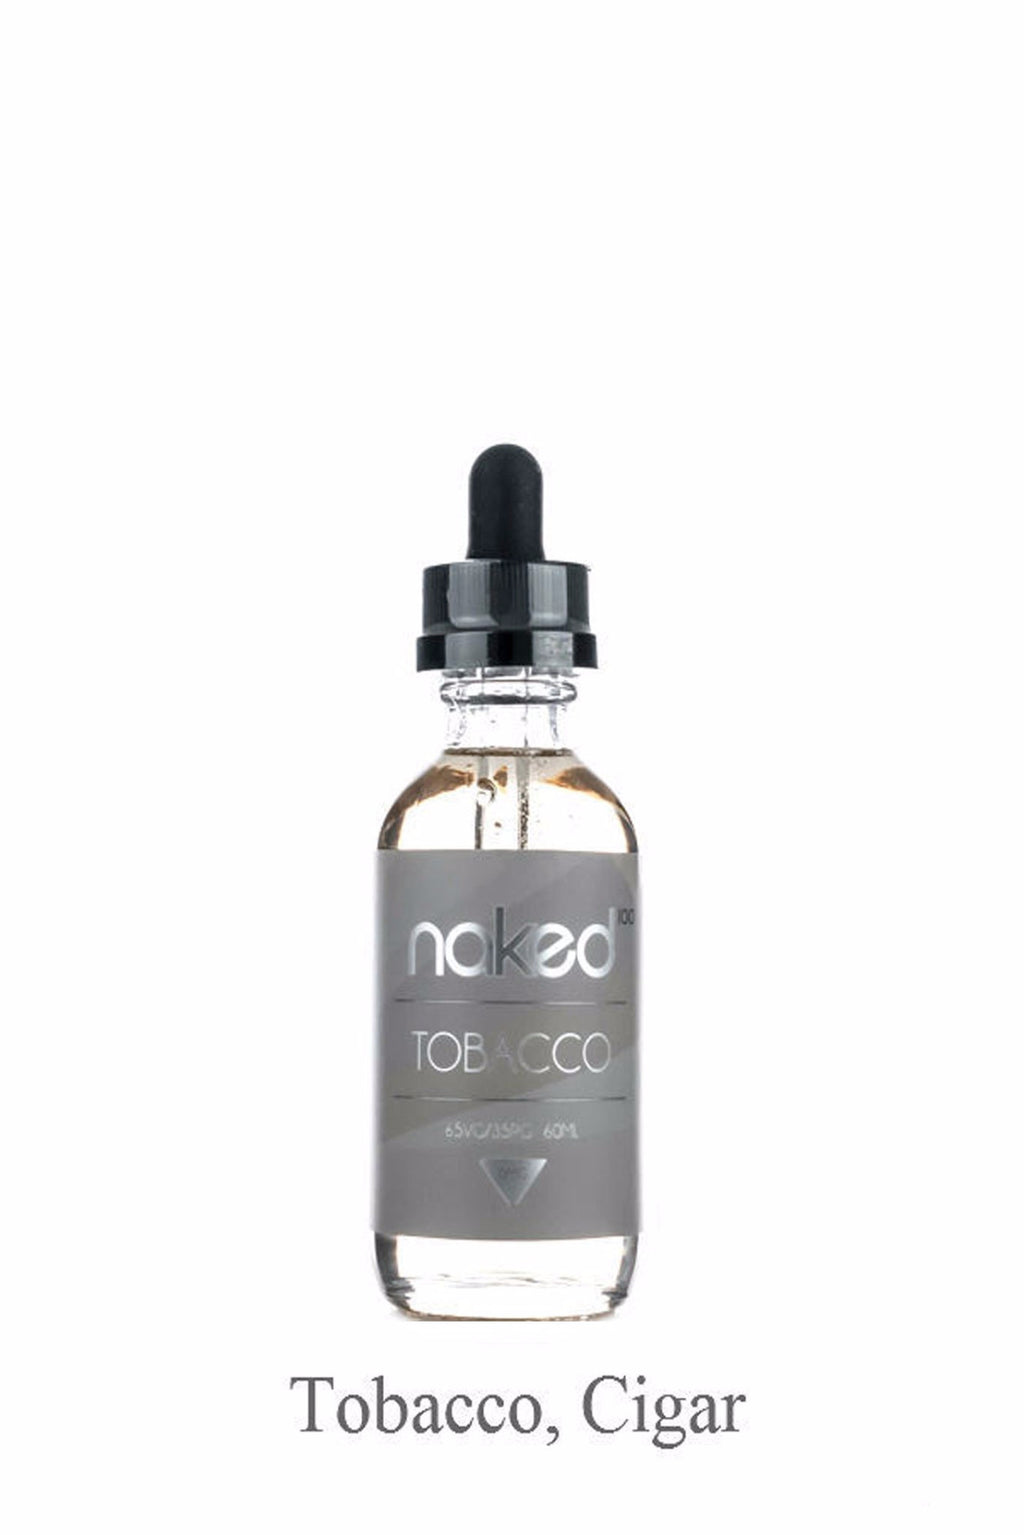 Naked 100 - Cuban Blend 60mL